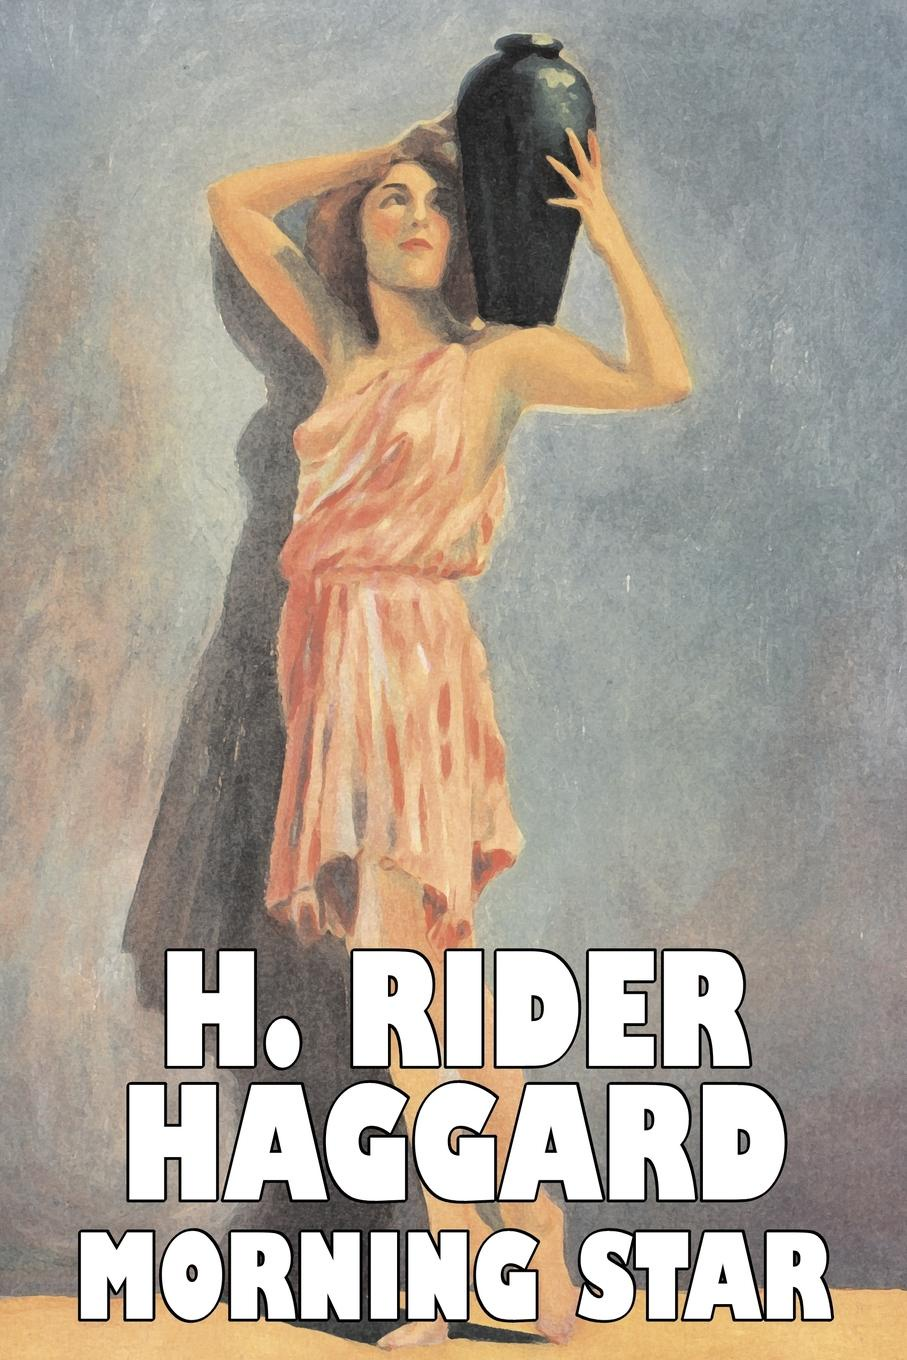 H. Rider Haggard Morning Star by H. Rider Haggard, Fiction, Fantasy, Historical, Action & Adventure, Fairy Tales, Folk Tales, Legends & Mythology rider haggard н montezuma s daughter